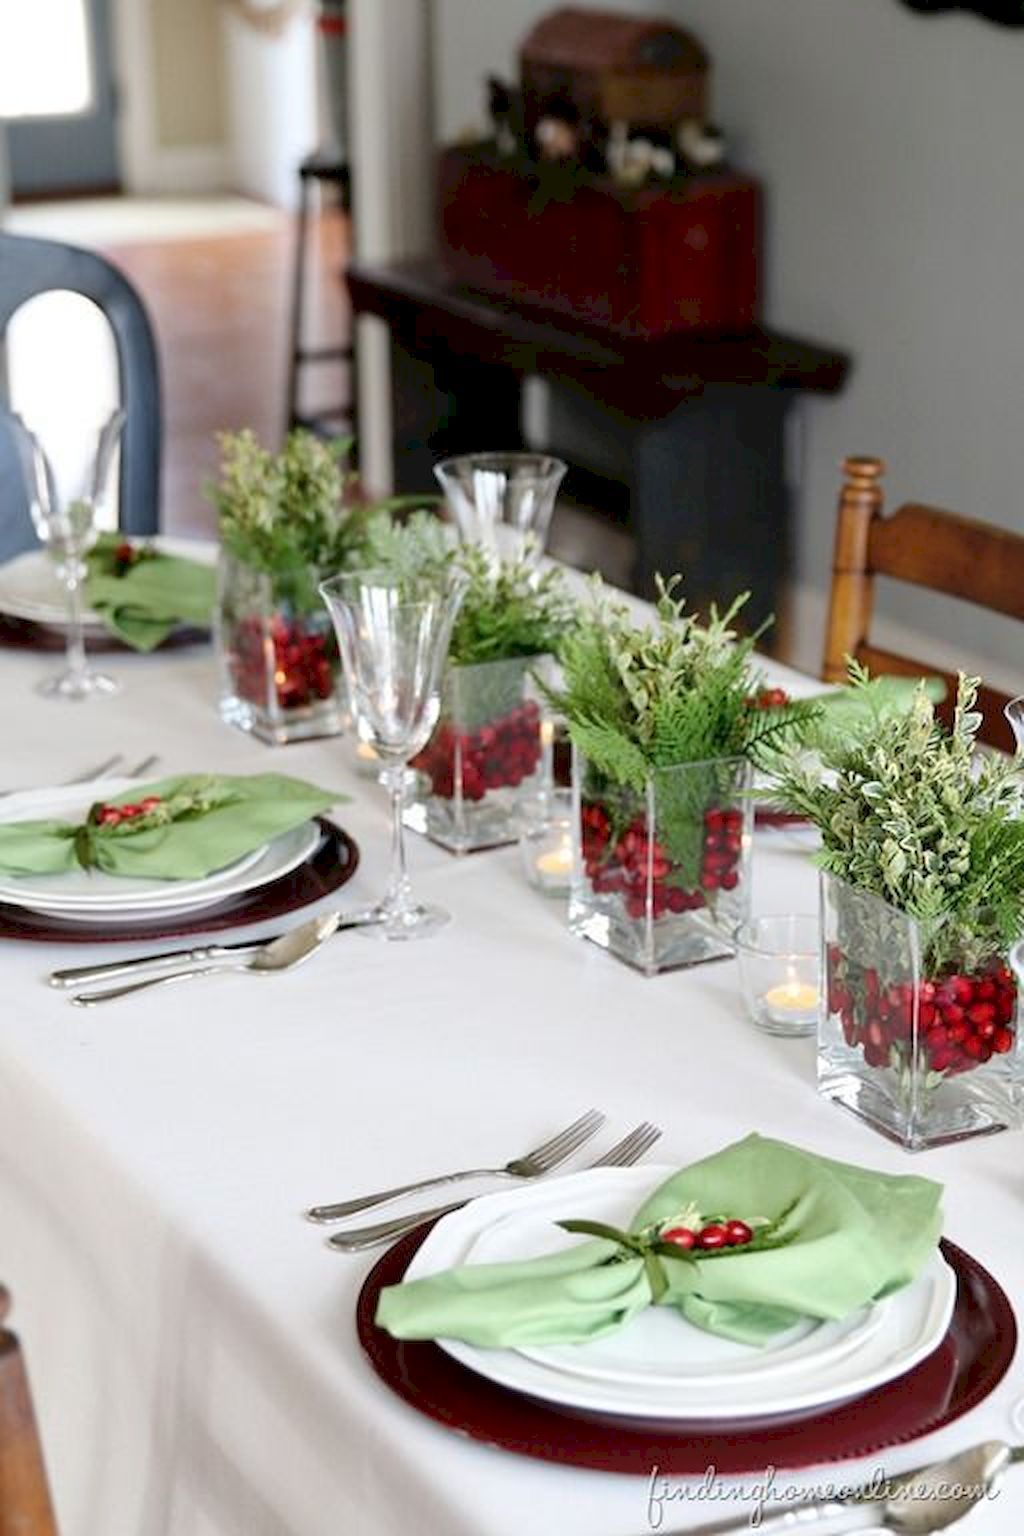 40 Awesome Christmas Dinner Table Decorations Ideas 20 Christmas Table Centerpieces Christmas Decorations Dinner Table Christmas Dinner Table